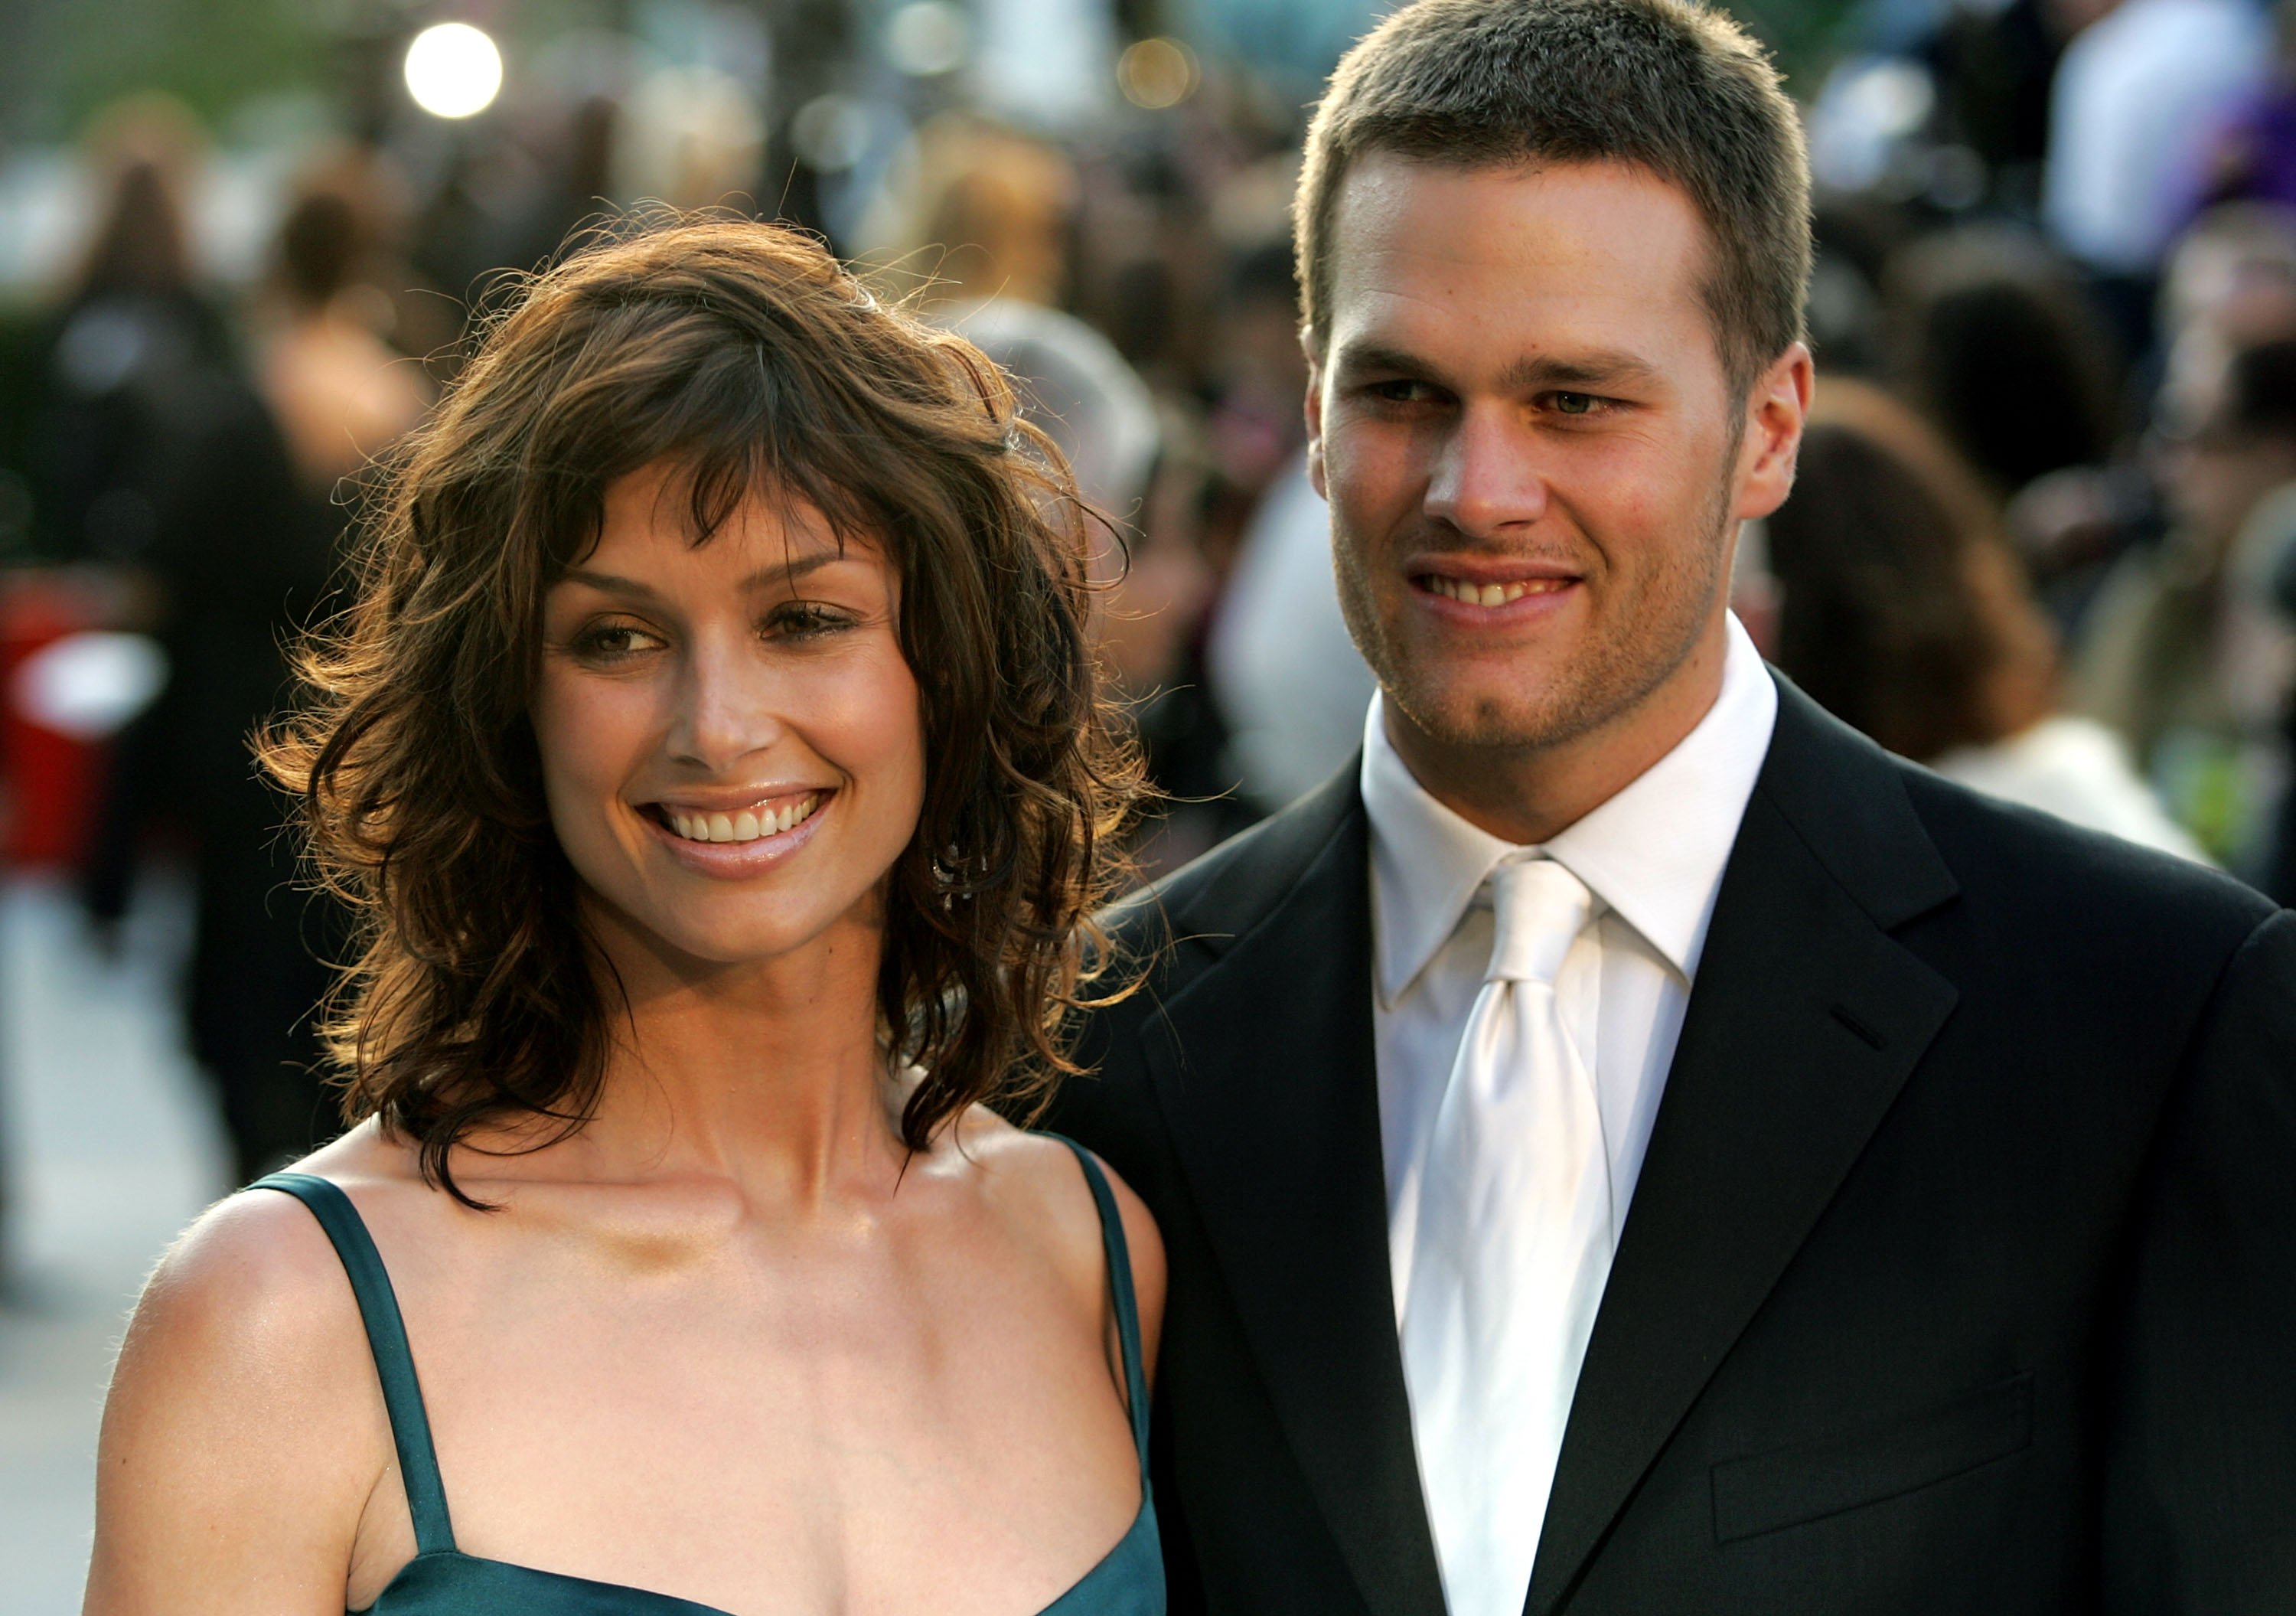 Bridget Moynahan and quarterback Tom Brady and arrives at the Vanity Fair Oscar Party at Mortons on February 27, 2005 in West Hollywood, California | Photo: GettyImages